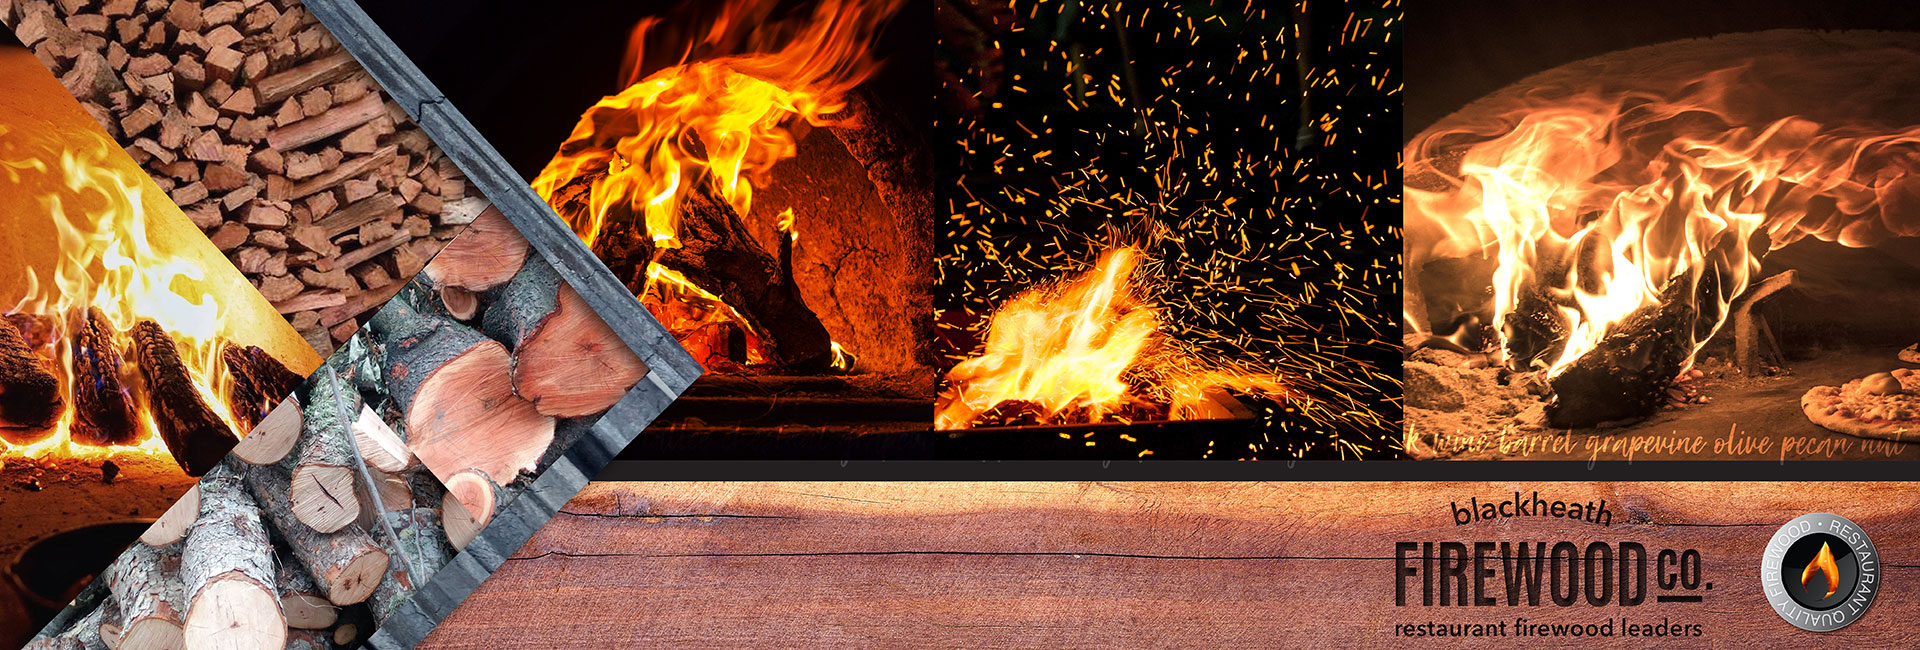 Restaurant Firewood Supplier Australia